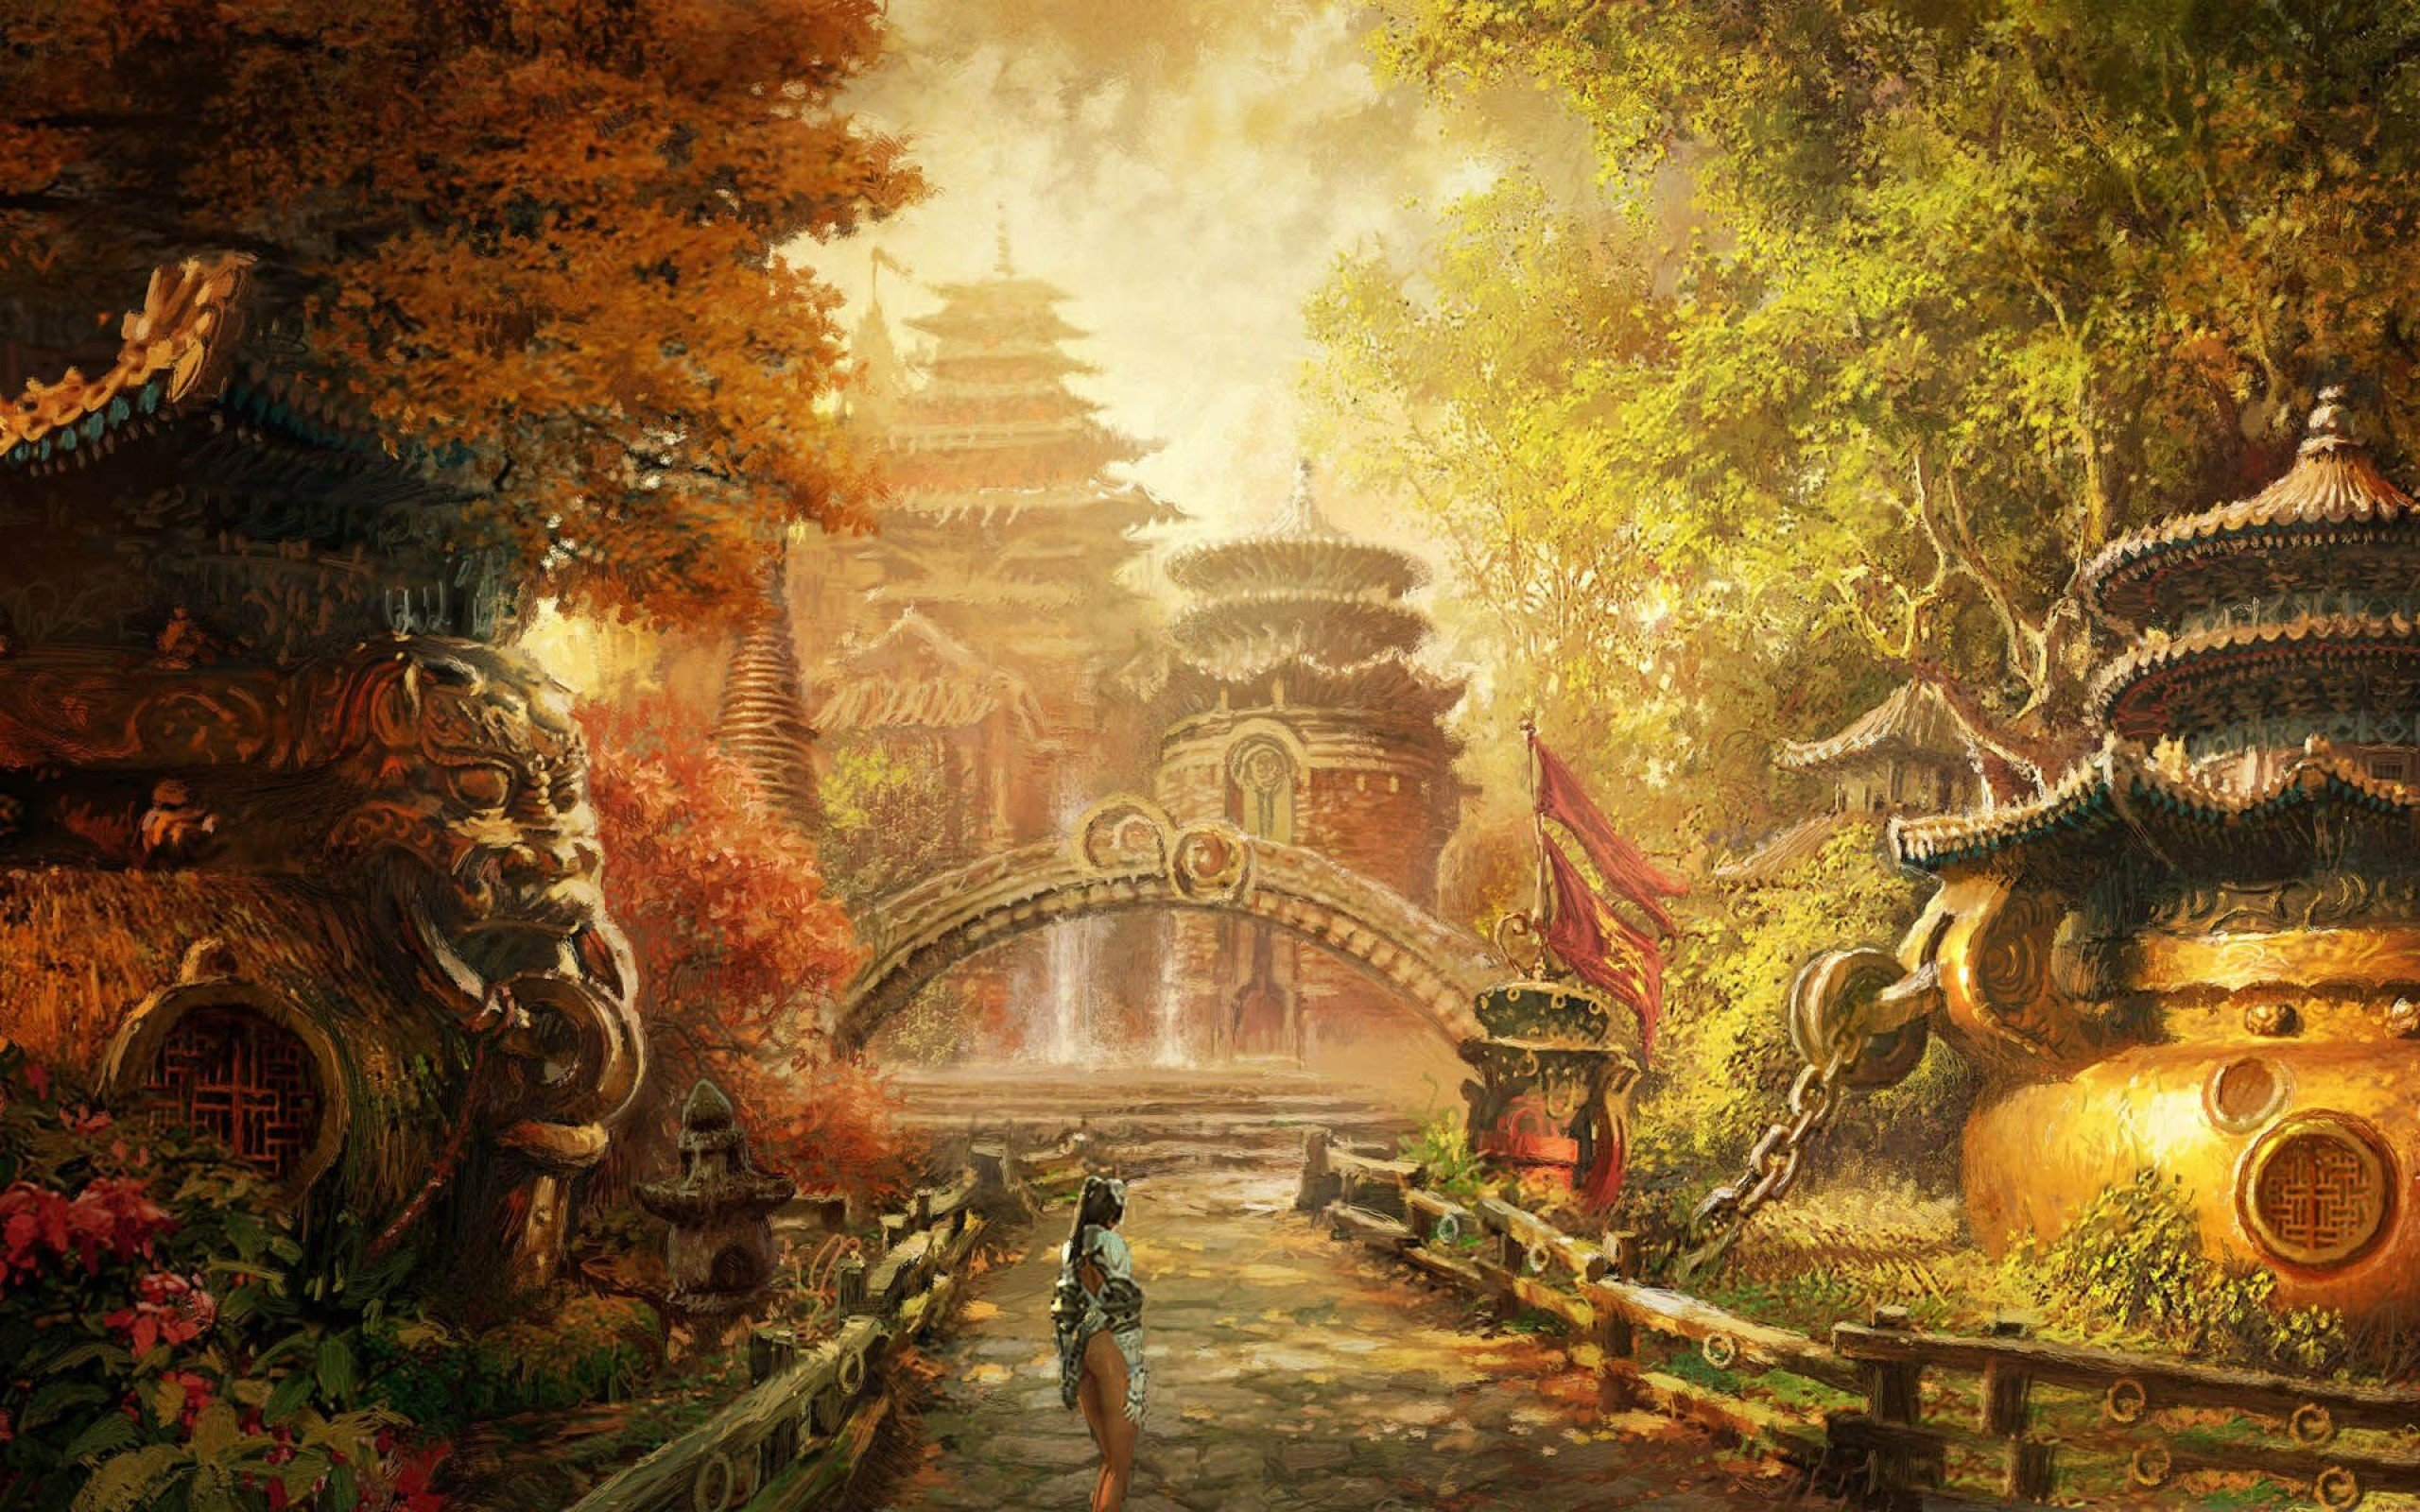 Fantasy rpg wallpaper share online - Blade And Soul Asian Martial Arts Action Fighting 1blades